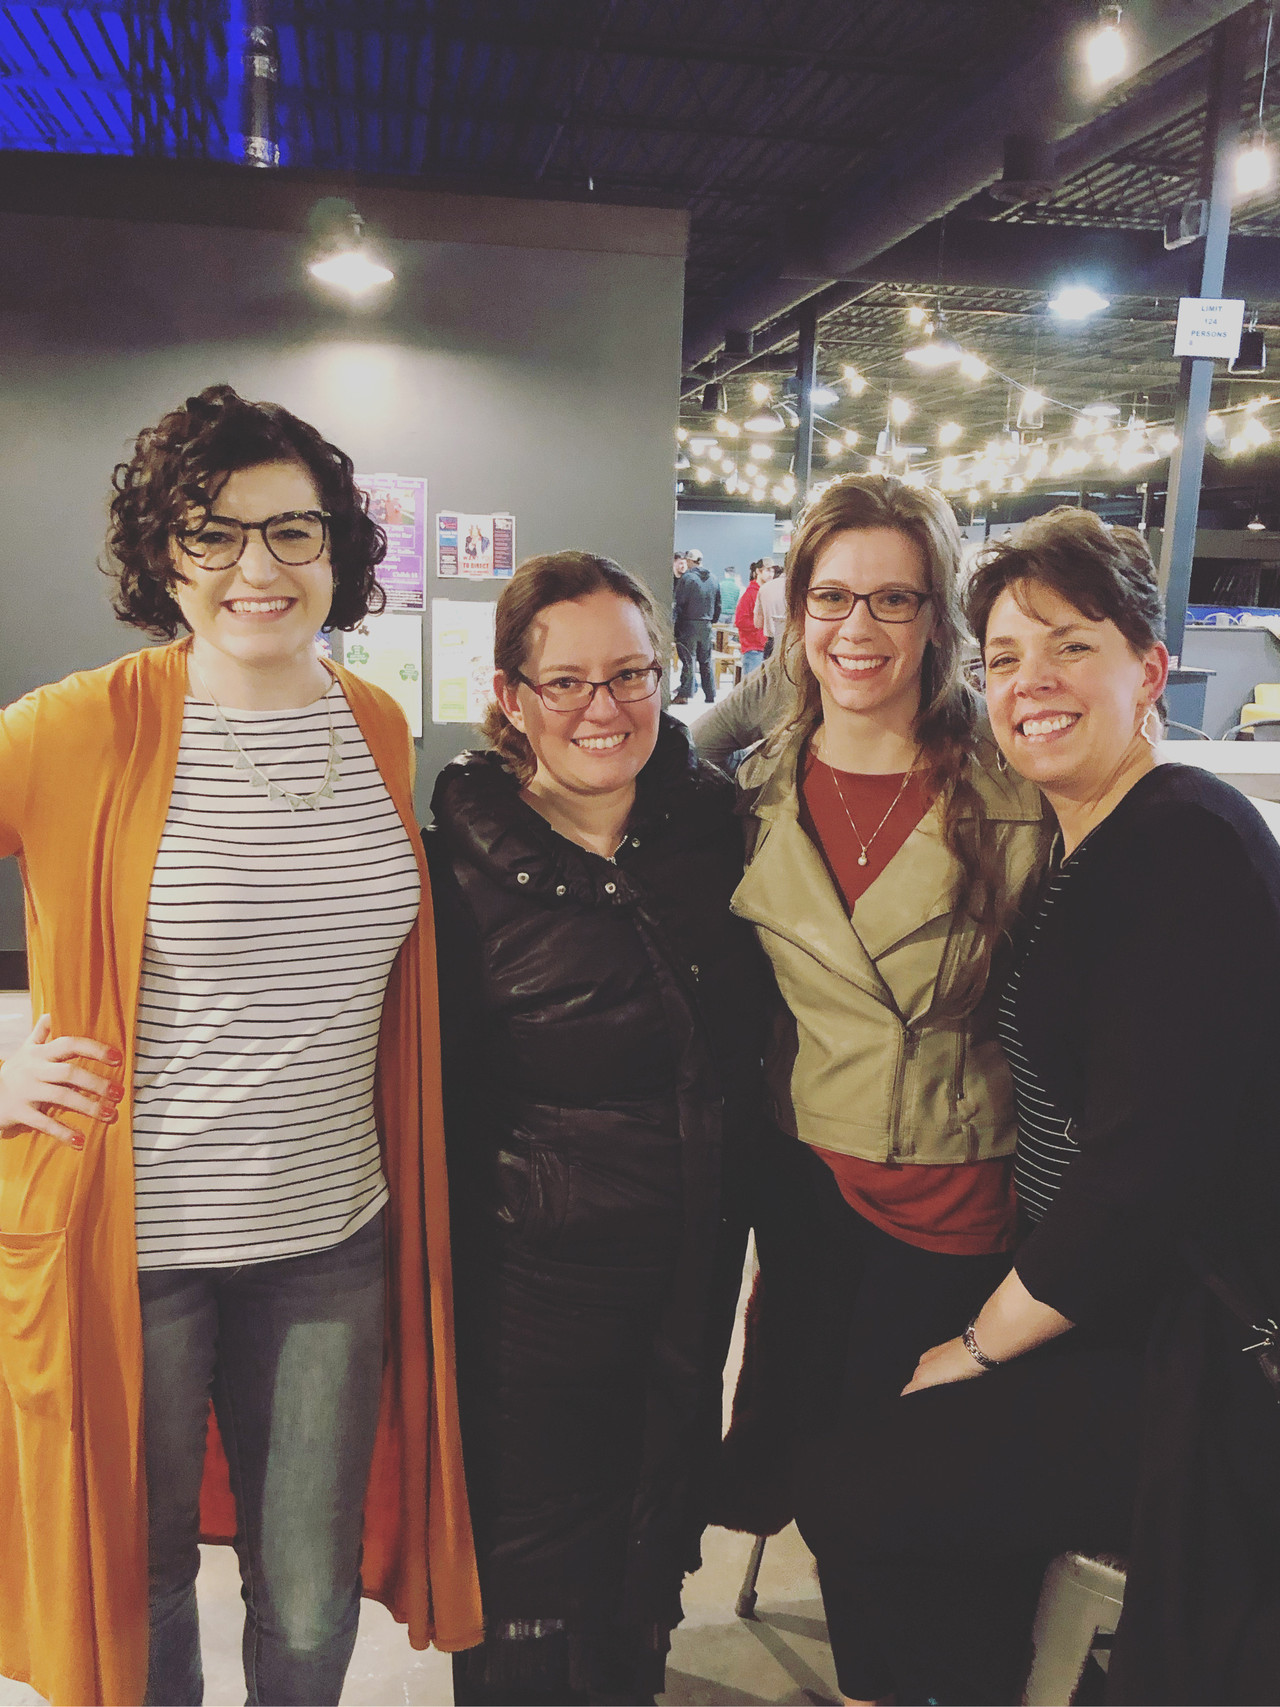 a group or women pose for a photo in District One Brewing Co.